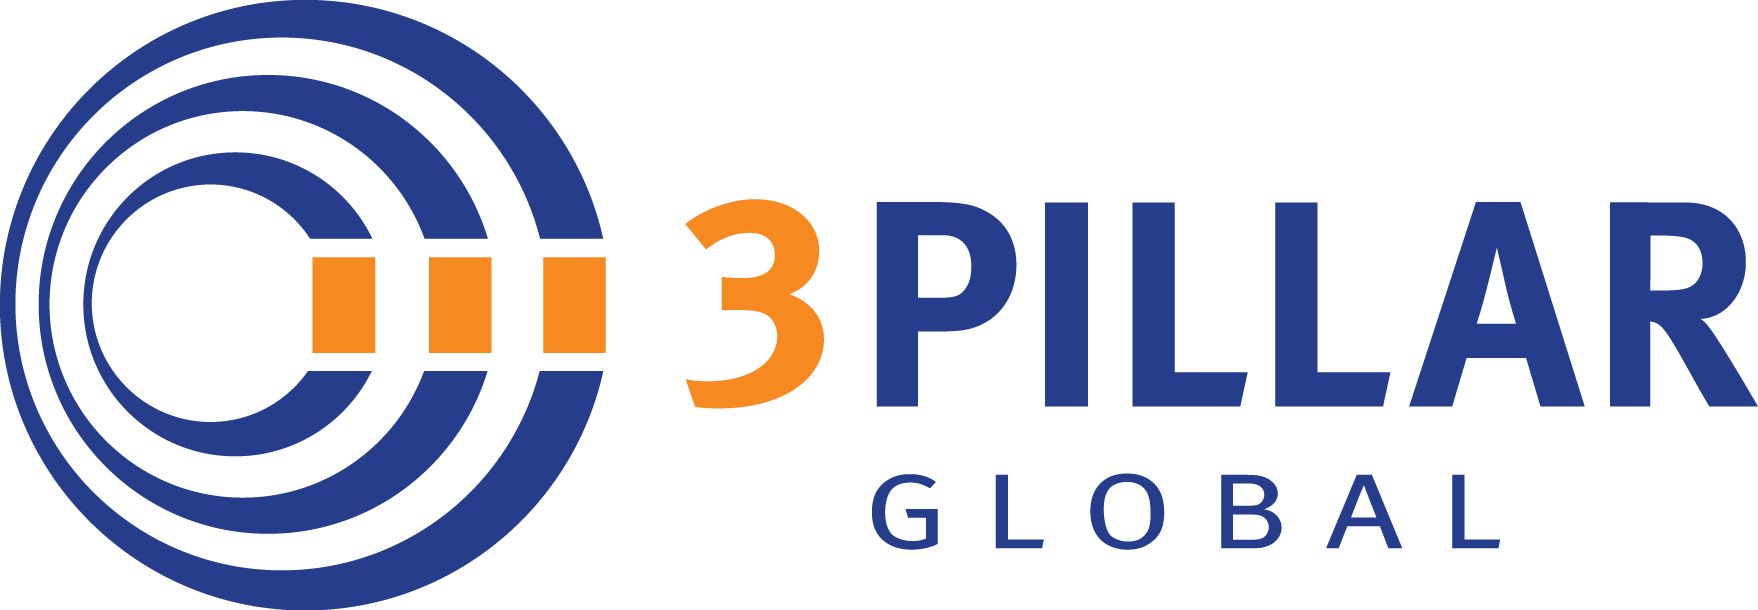 3Pillar Global logo